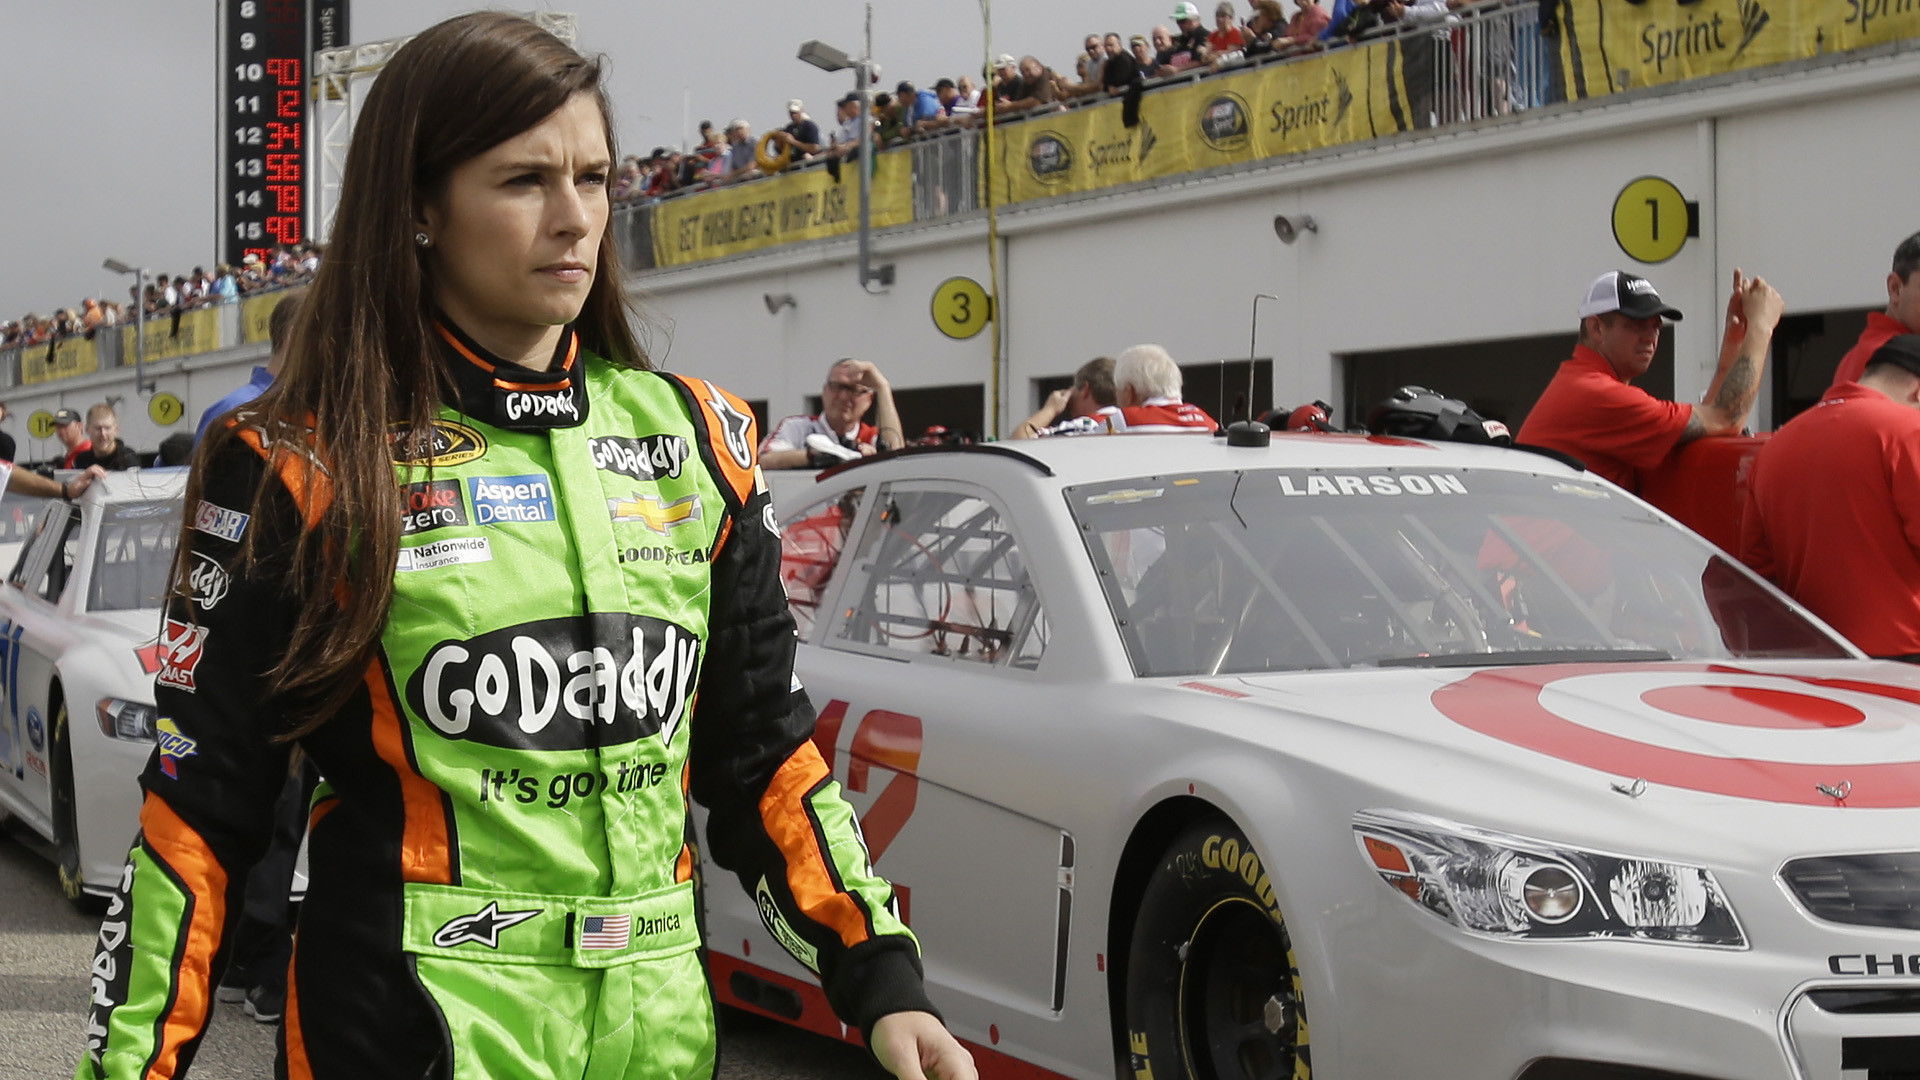 Danica Patrick faces big question: Will she ever win a Cup race? | NASCAR |  Sporting News